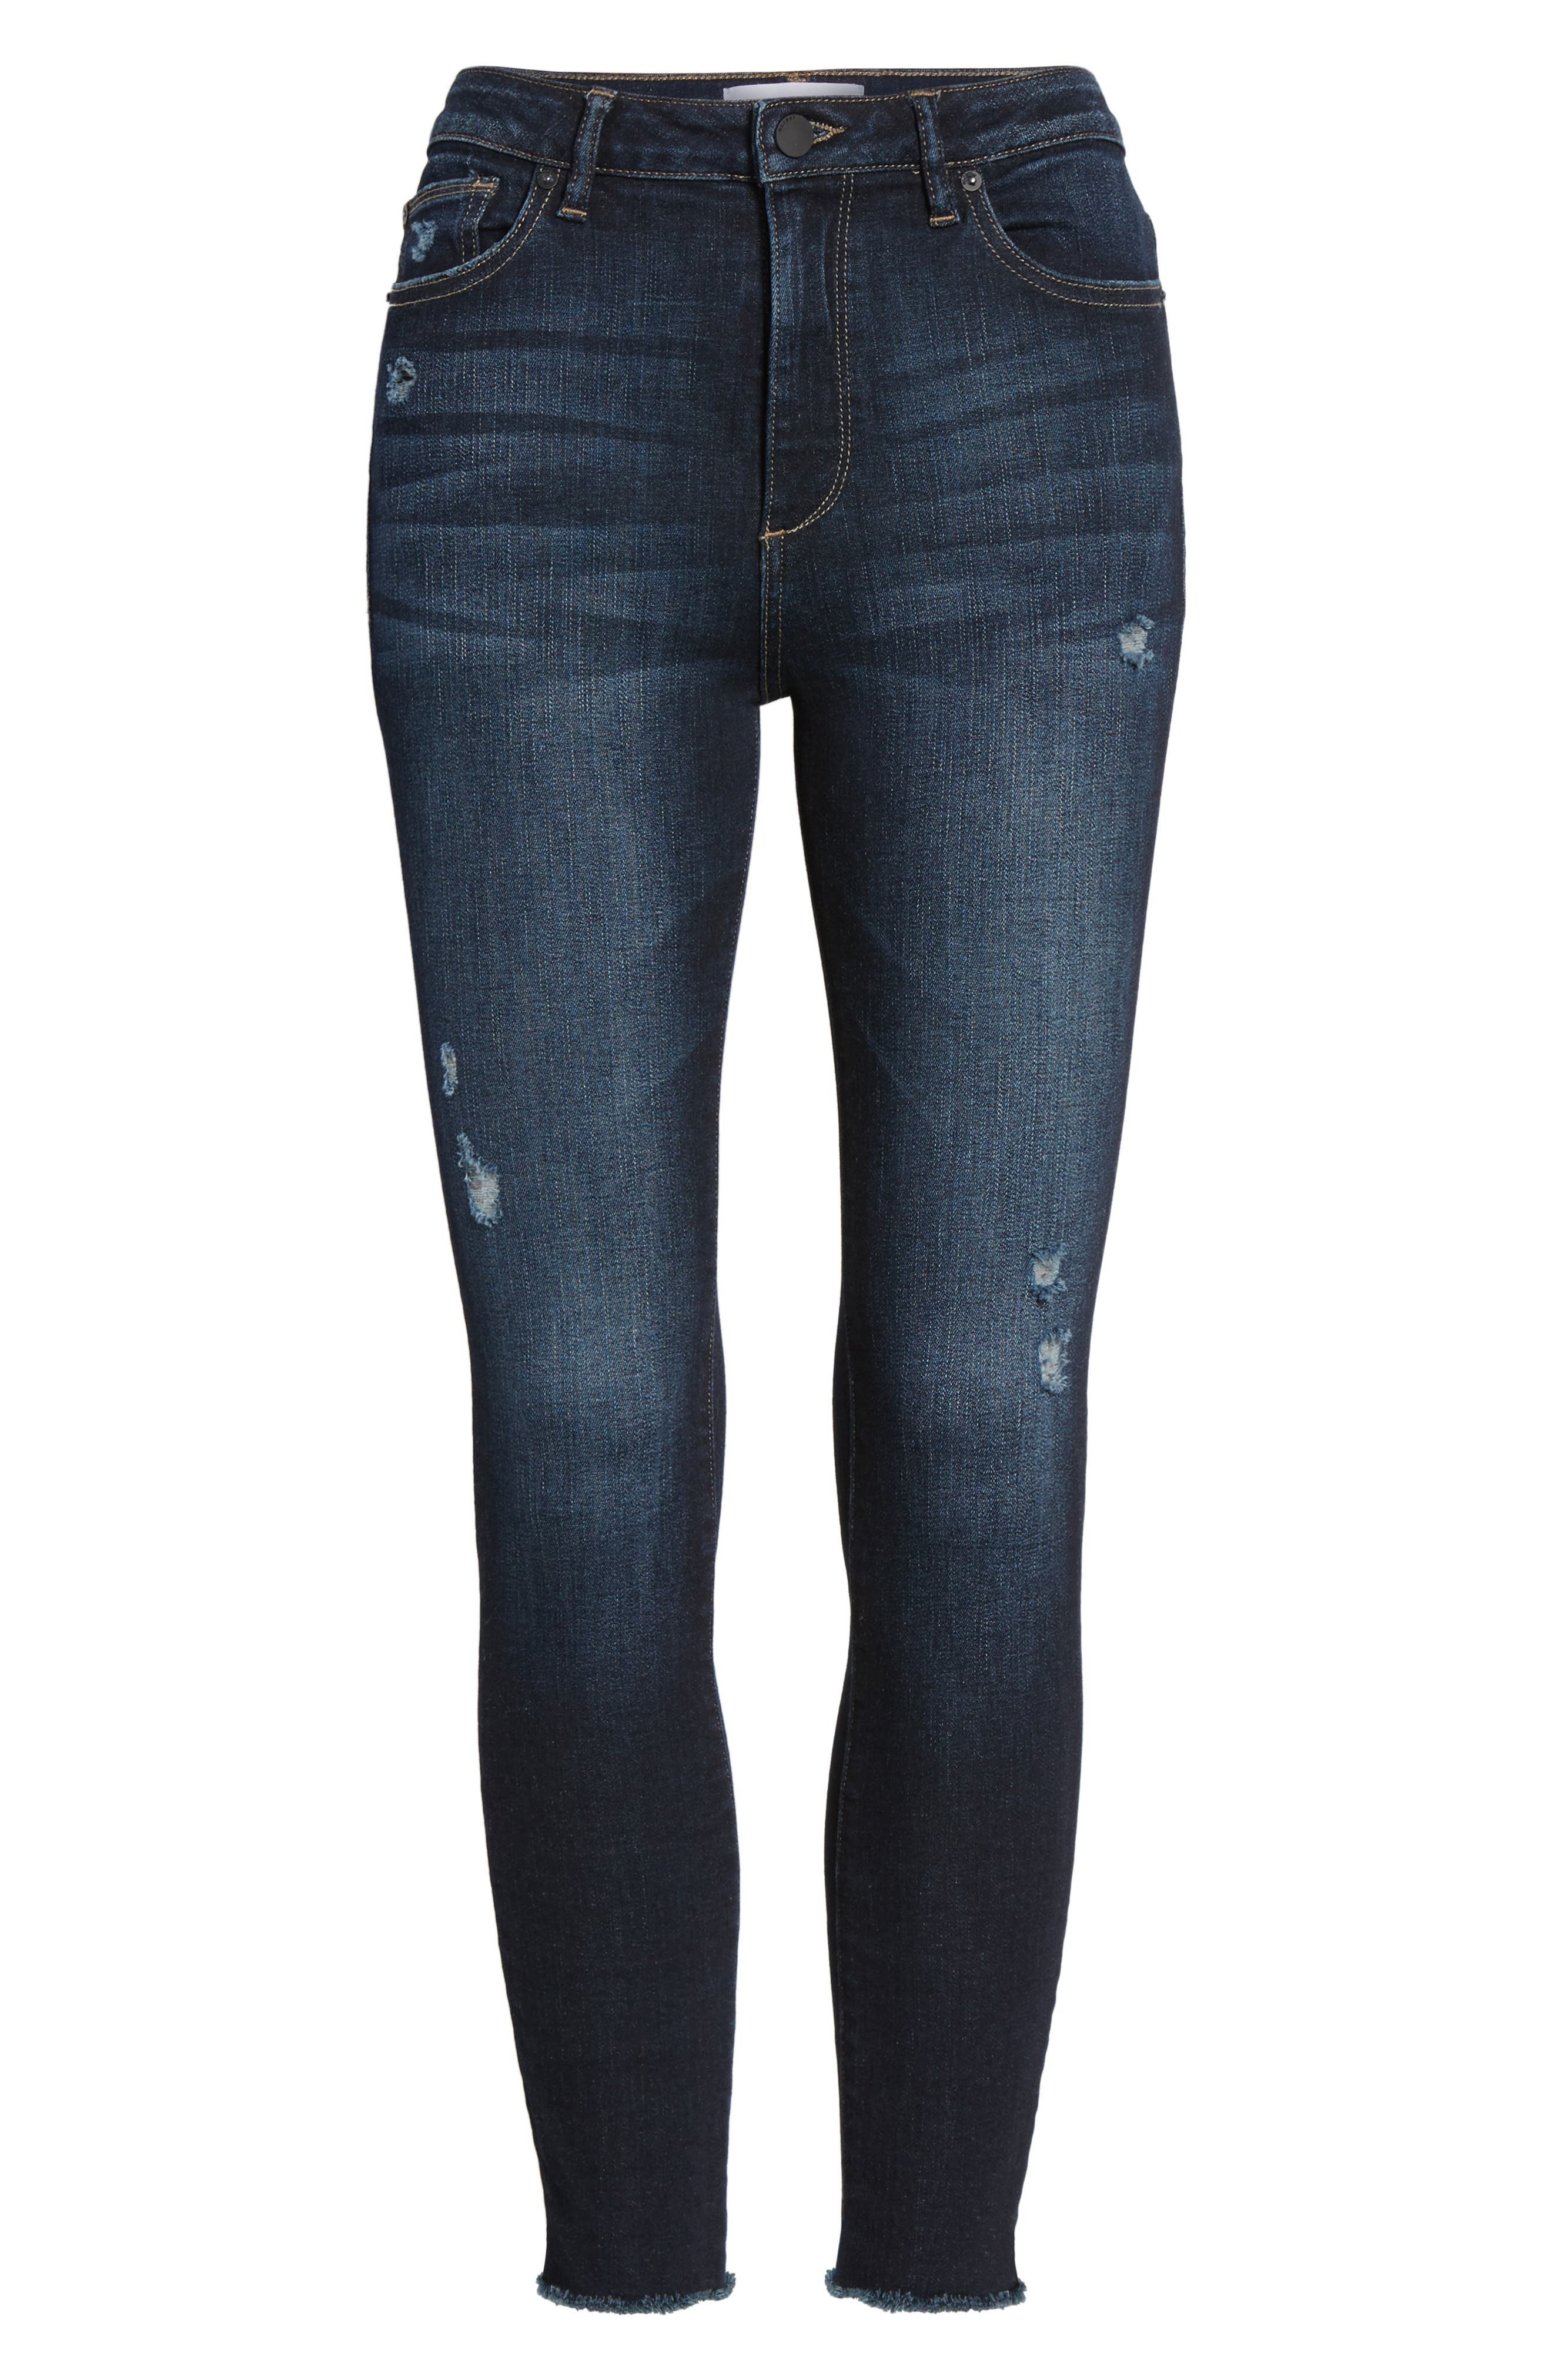 Chrissy High Waist Crop Skinny Jeans,                             Alternate thumbnail 6, color,                             405